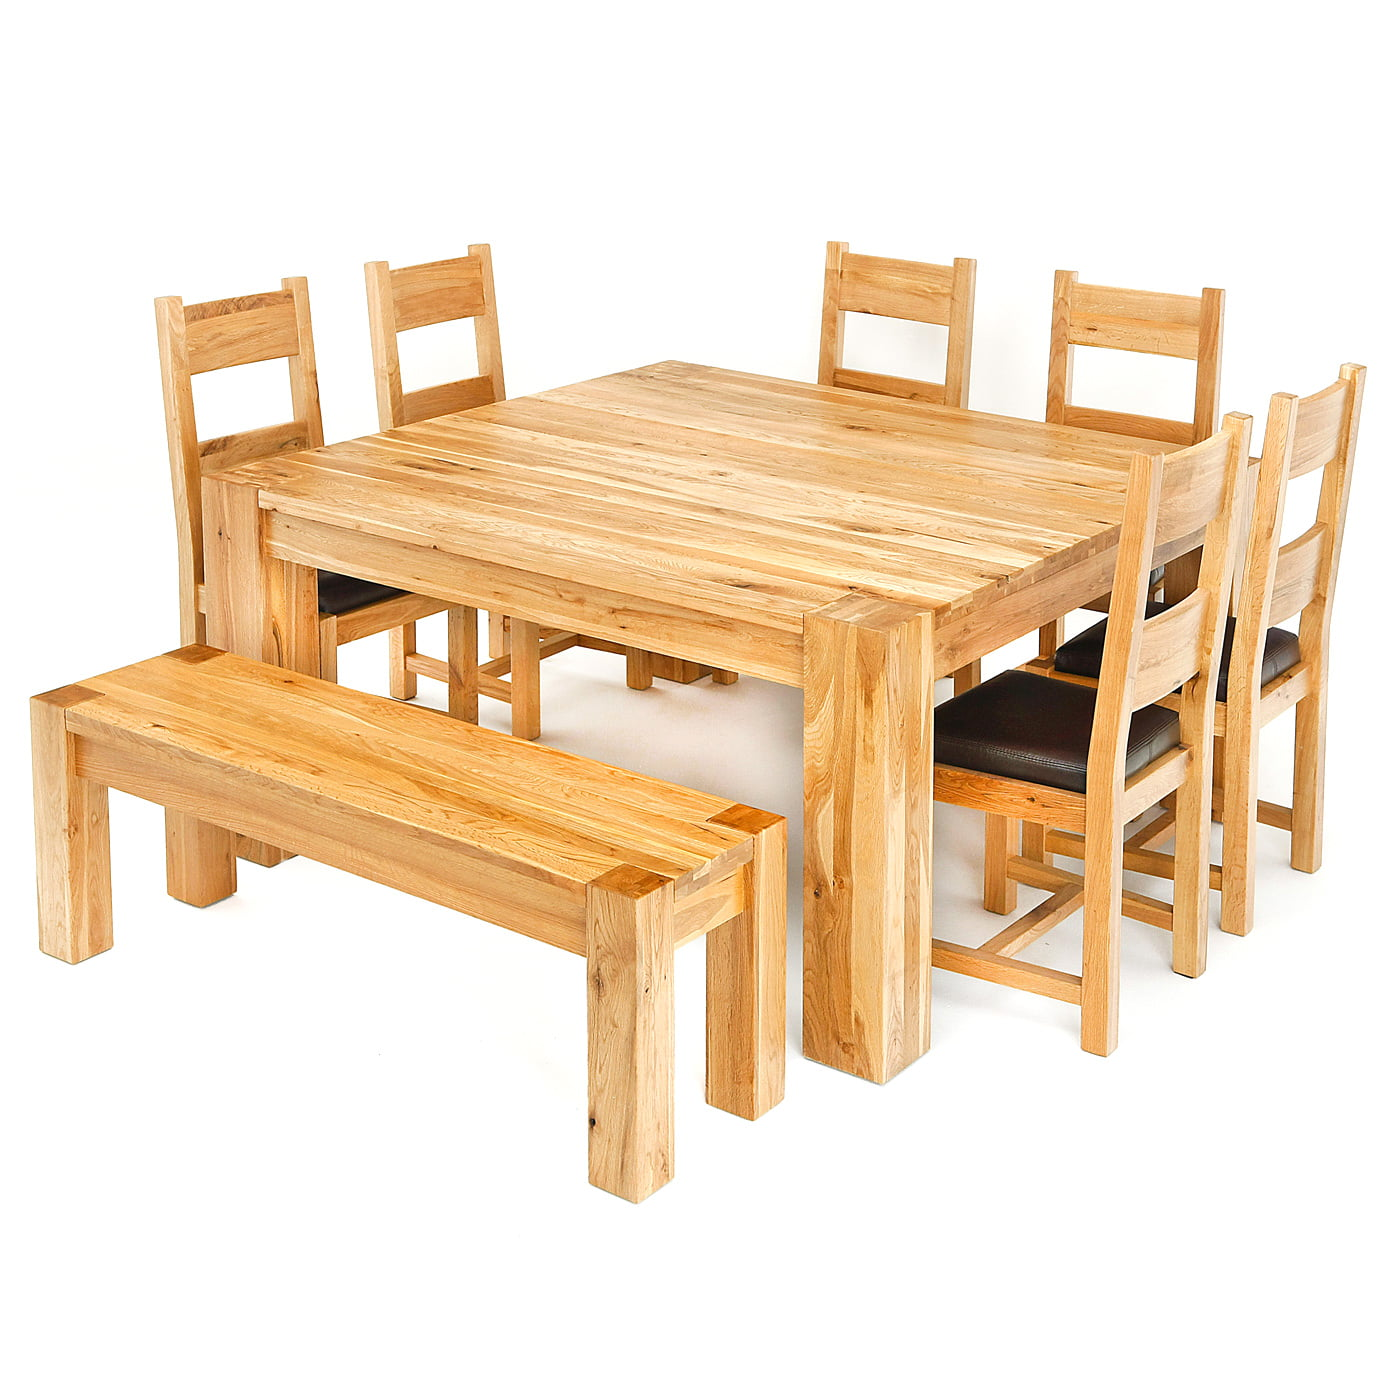 Lincoln 15m solid oak square dining table redtree furniture oak square dining table lincoln 15m sq table2 watchthetrailerfo